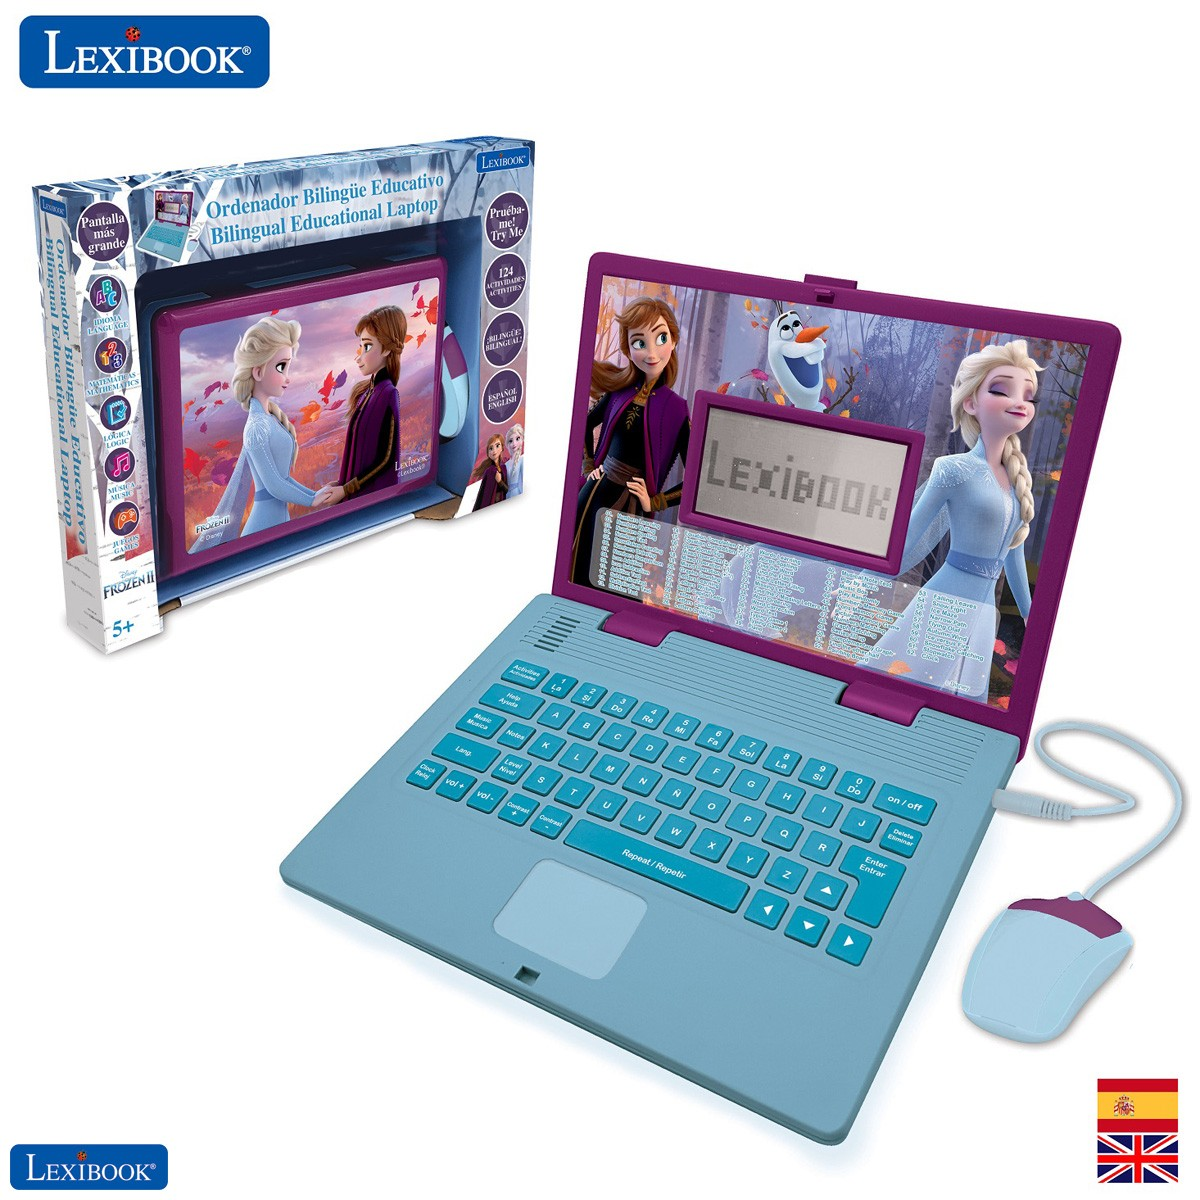 Disney Frozen 2 - Educational and Bilingual Laptop Spanish/English